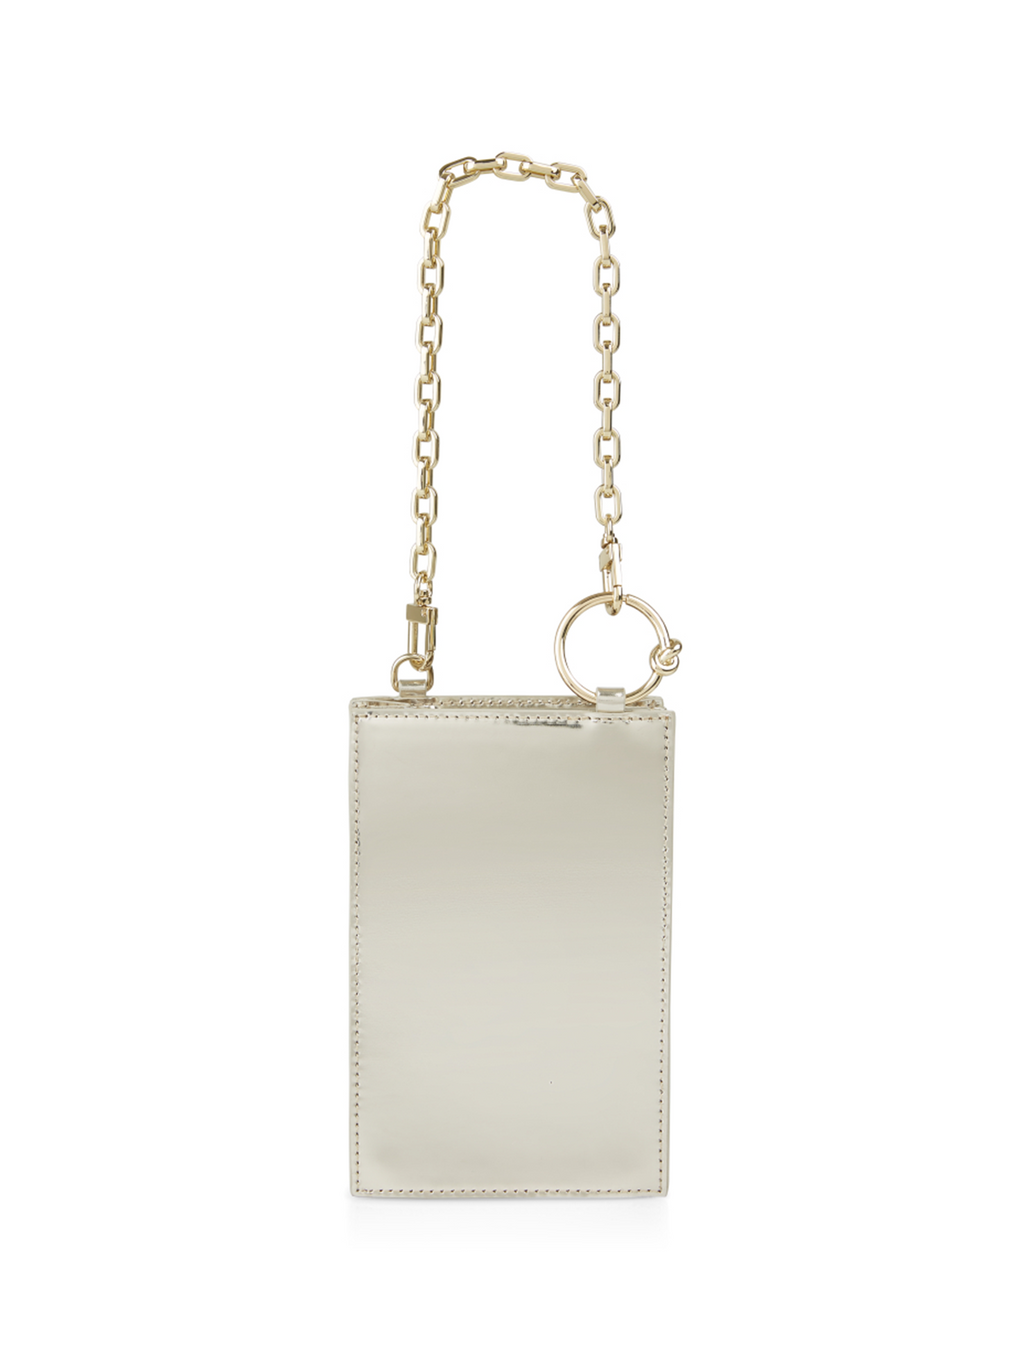 Marc Cain Small Metallic Shoulder Bag with Chain Details - Pre-Order